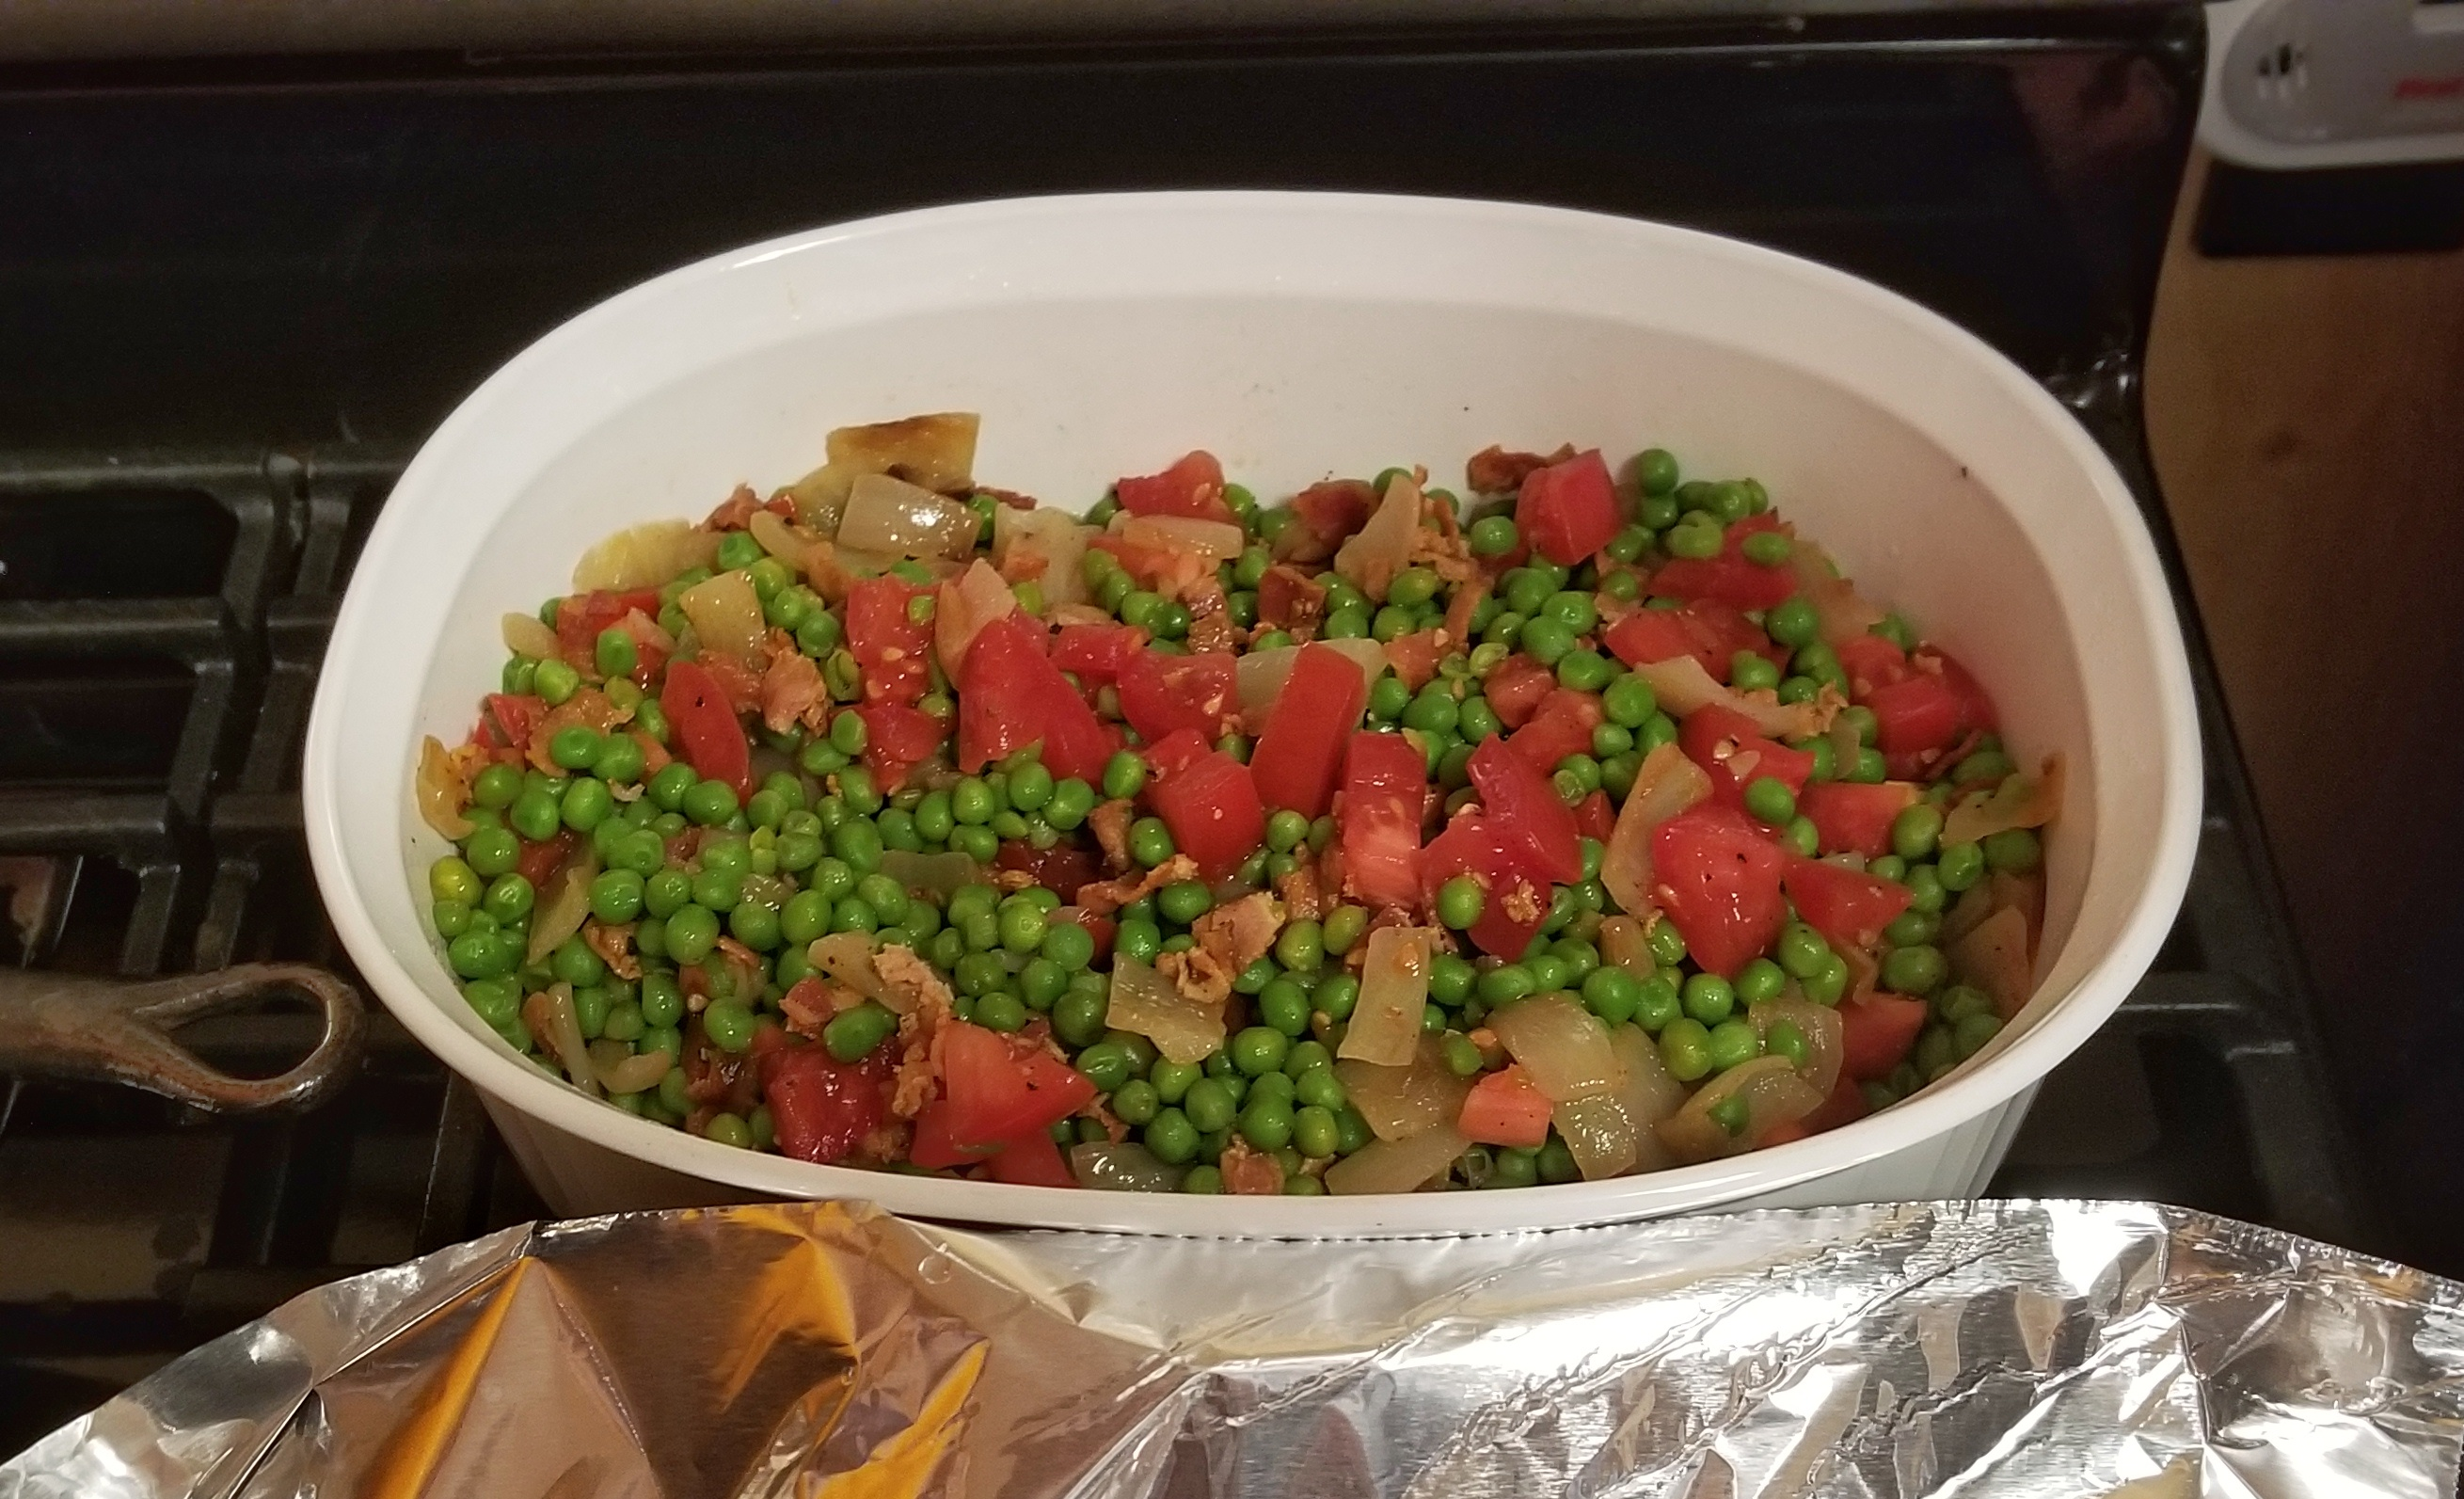 Piselli e guanciale, otherwise known as peas and bacon.